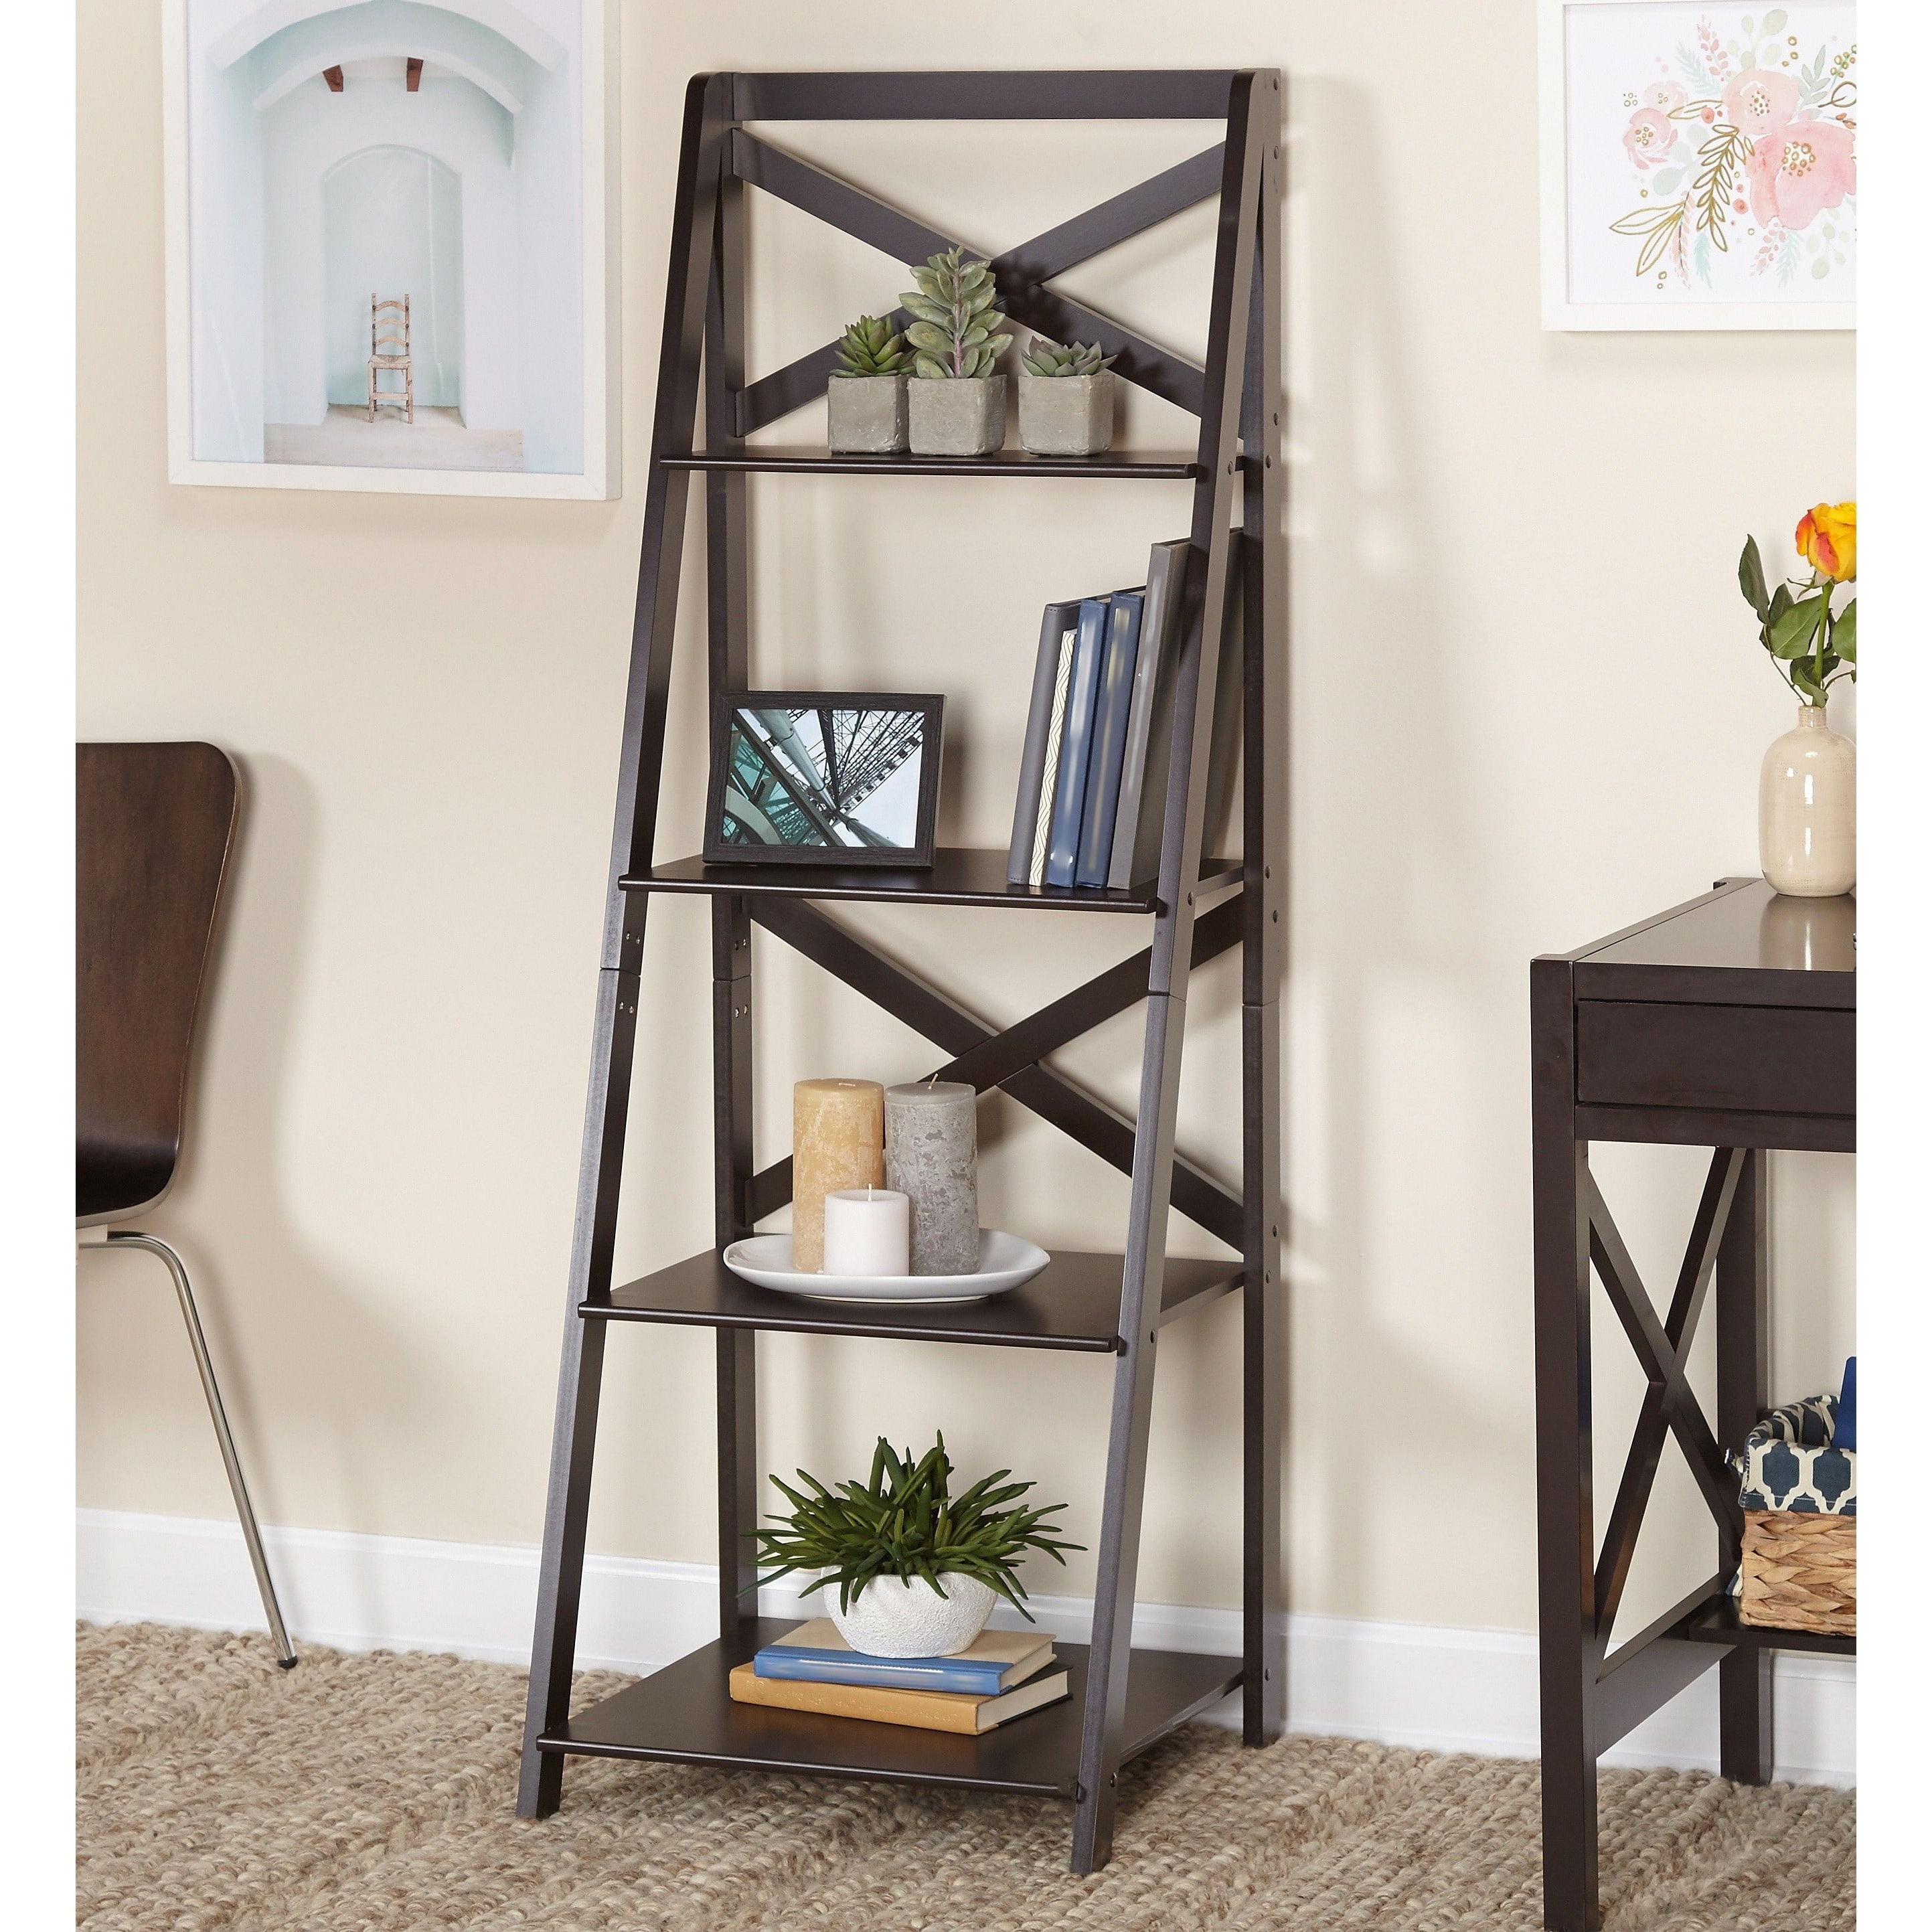 Simple Living X 4 Tier Shelf In Espresso (X Shelf), Brown For Most Up To Date Kaitlyn Ladder Bookcases (Gallery 11 of 20)